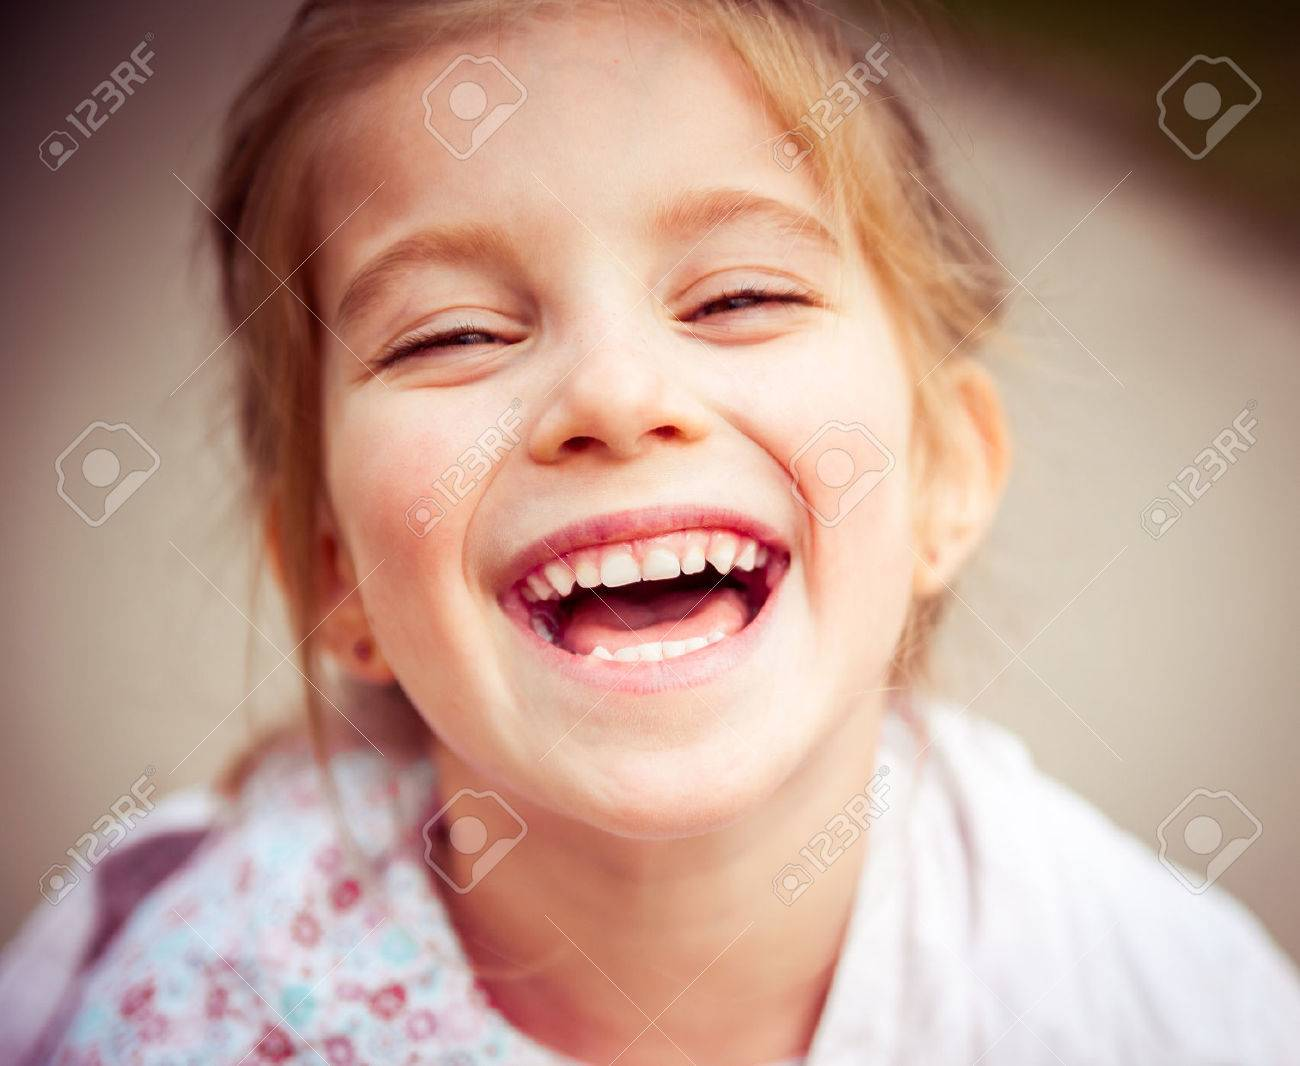 Portrait of a beautiful happy liitle girl close-up - 43021490